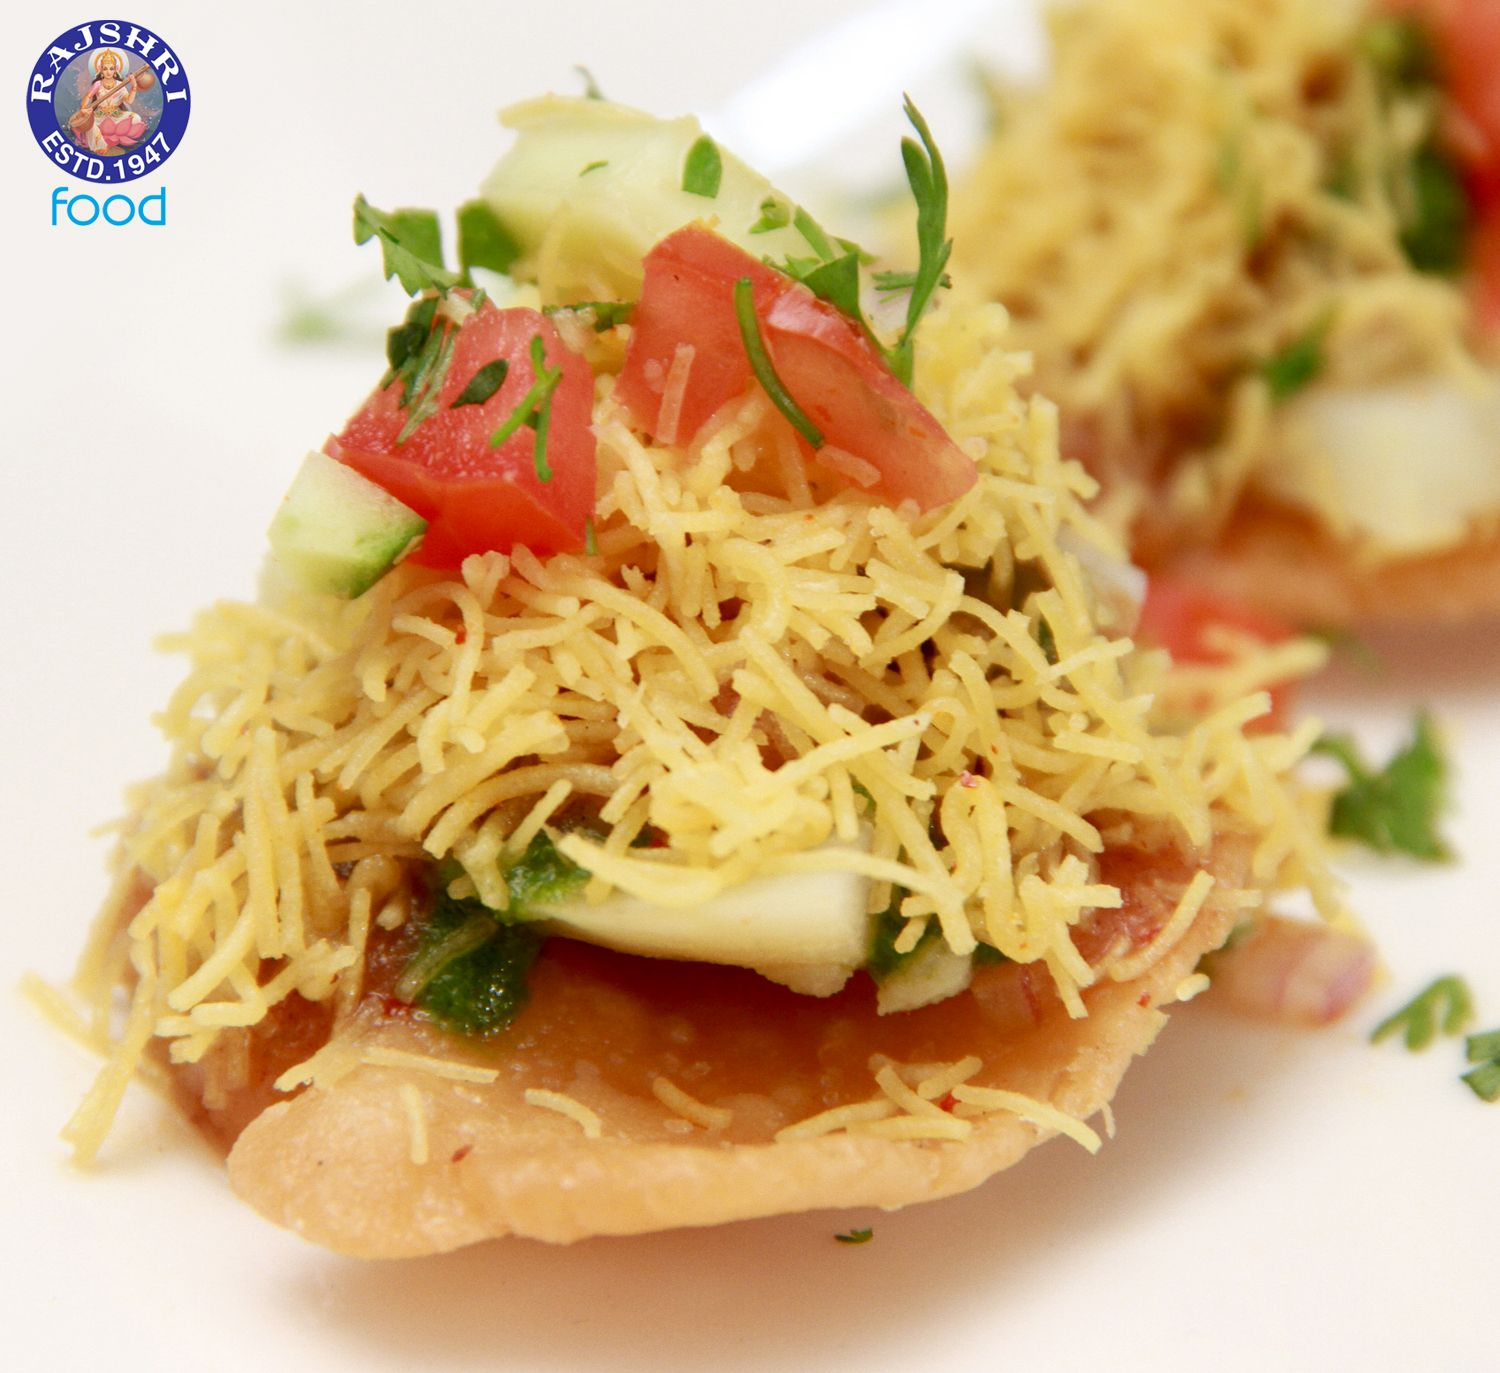 Sev puri indian canape vegetarian fast food recipe by ruchi sev puri indian canape vegetarian fast food recipe by ruchi bharani forumfinder Gallery